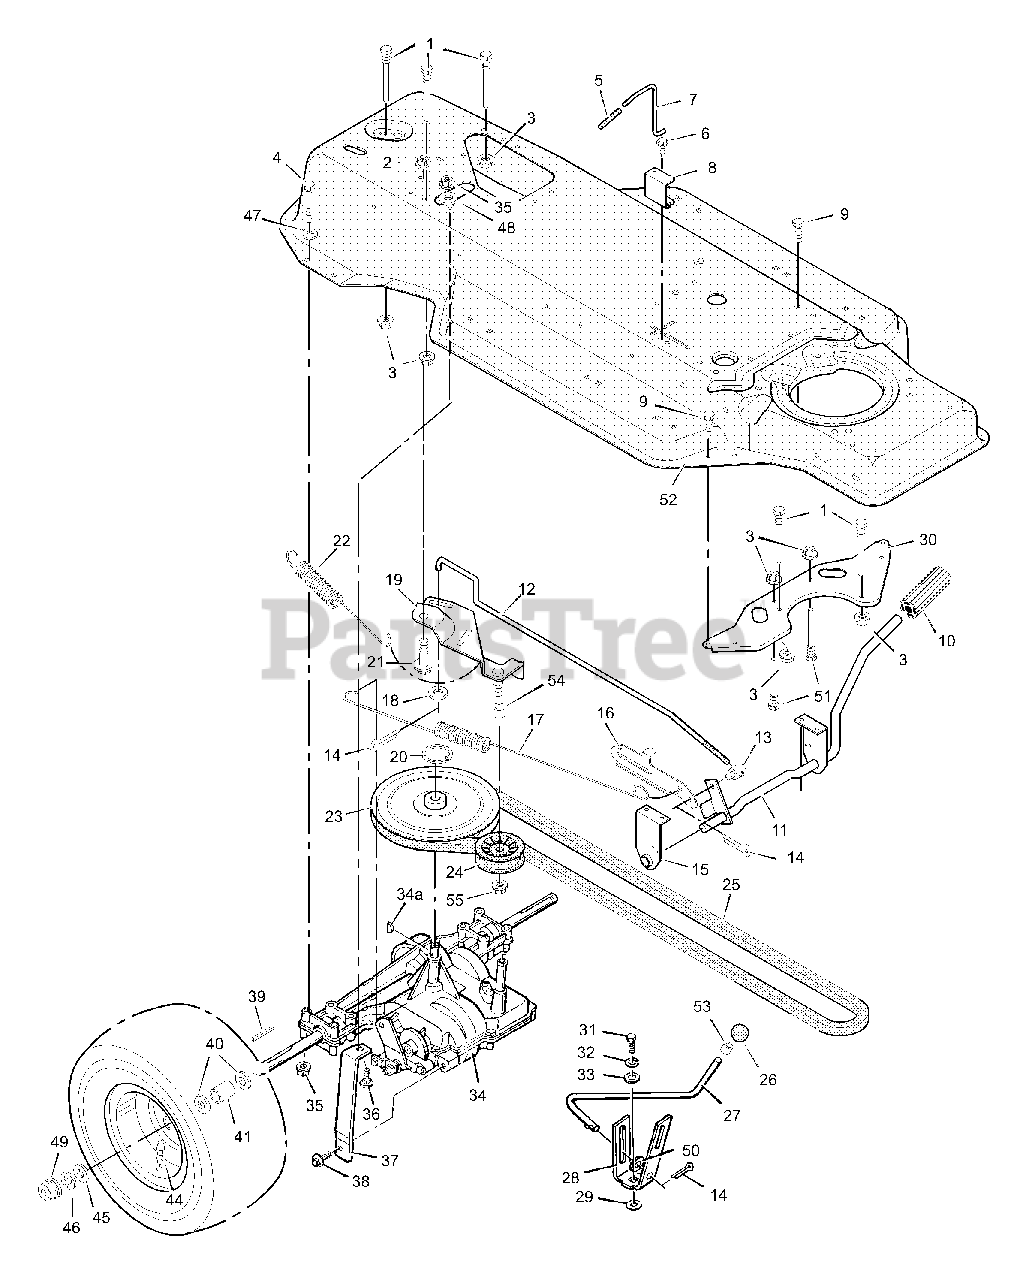 Murray Parts on the Motion Drive Diagram for 387000x92A